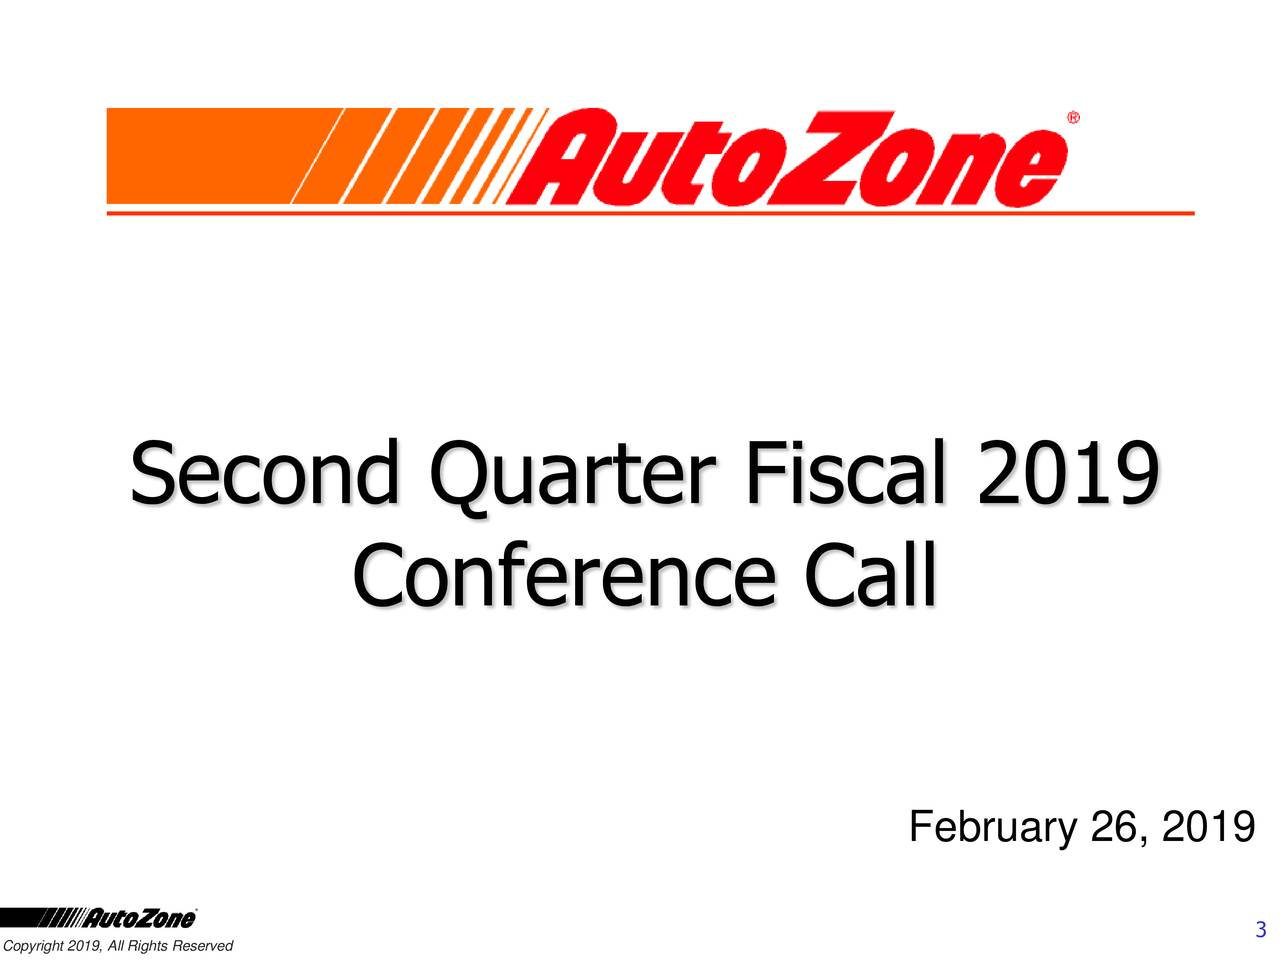 Conference Call February 26, 2019